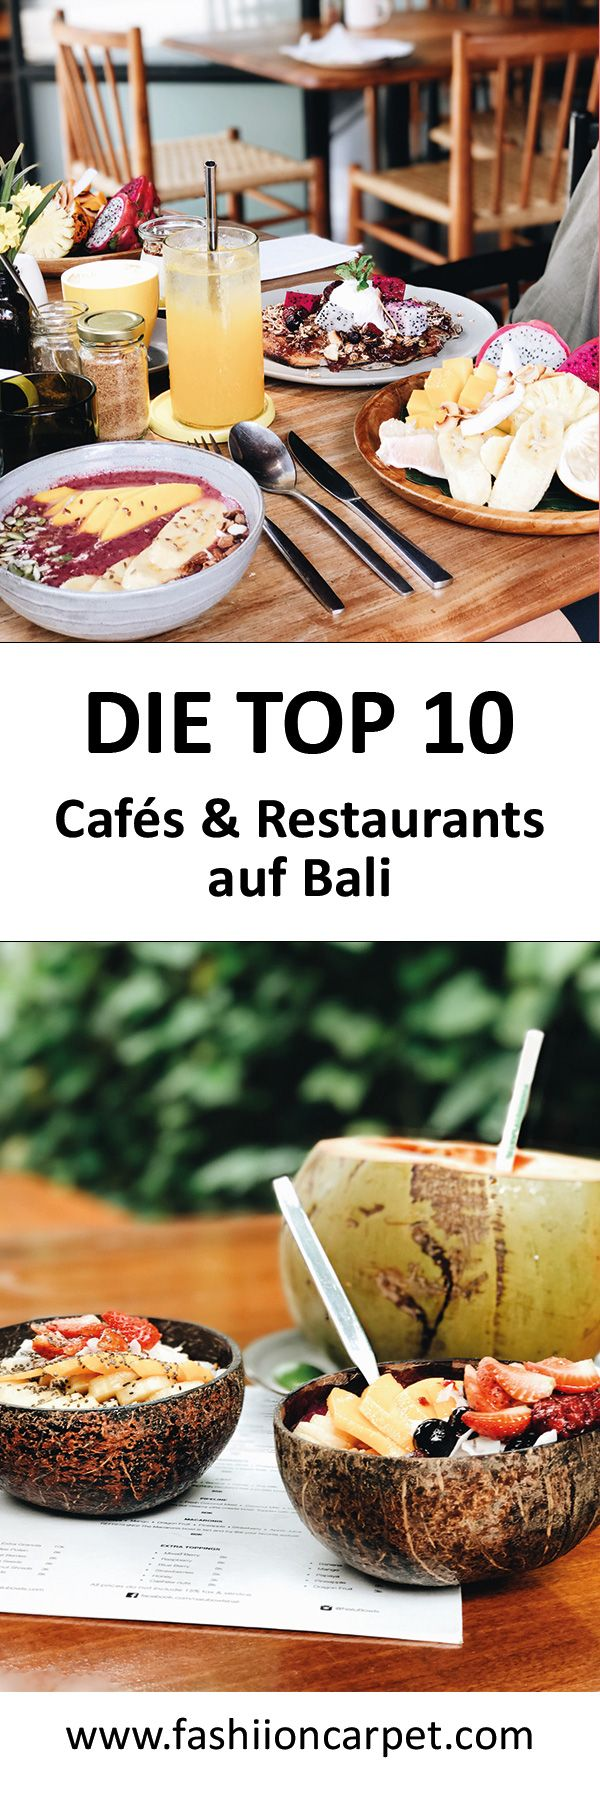 Photo of The best restaurants & breakfast cafes in bali (canggu, ubud, uluwatu & seminyak)